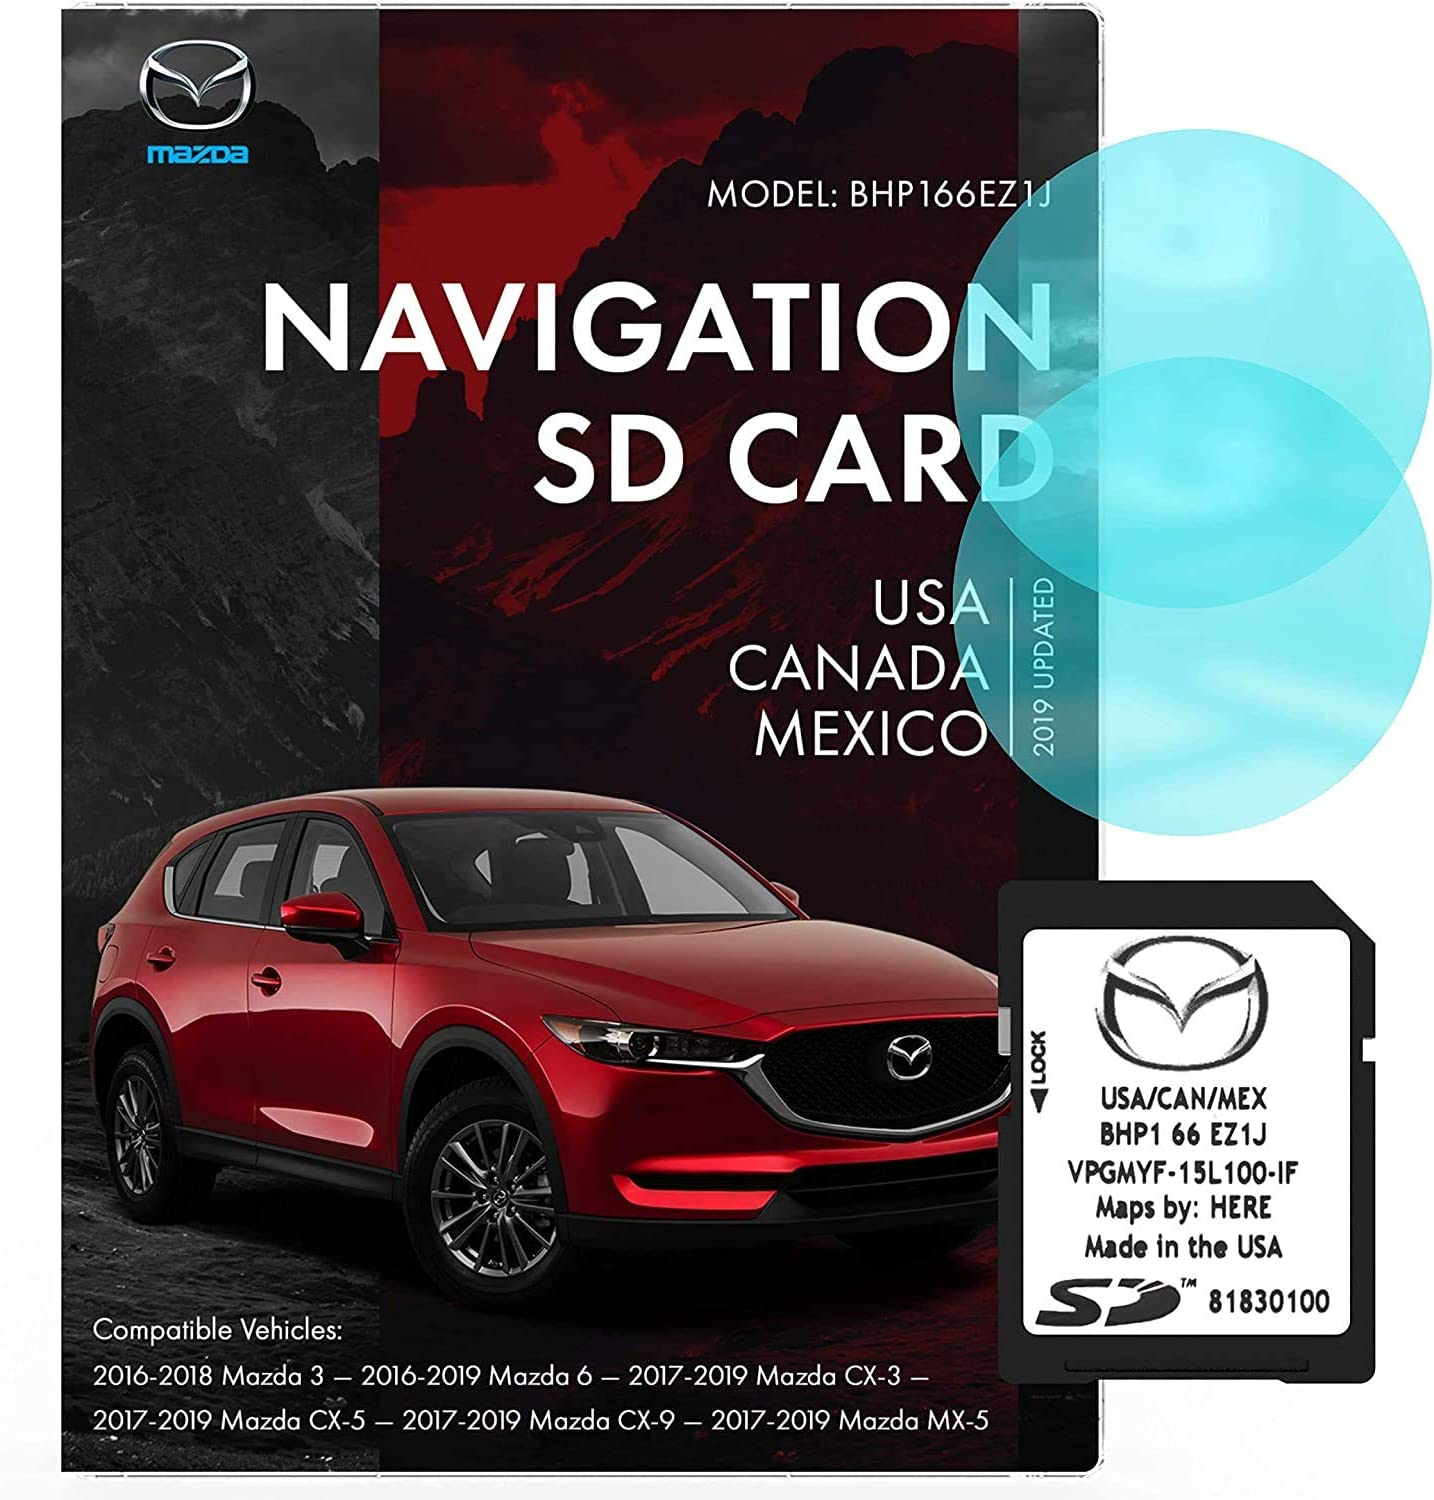 Mazda SD Navigation Card BHP166EZ1J | Latest Update 2019 | Mazda 3 6 CX-3 CX-5 CX-9 | Voice Turn Direction Guidance, Support Speed and Red Light Warning